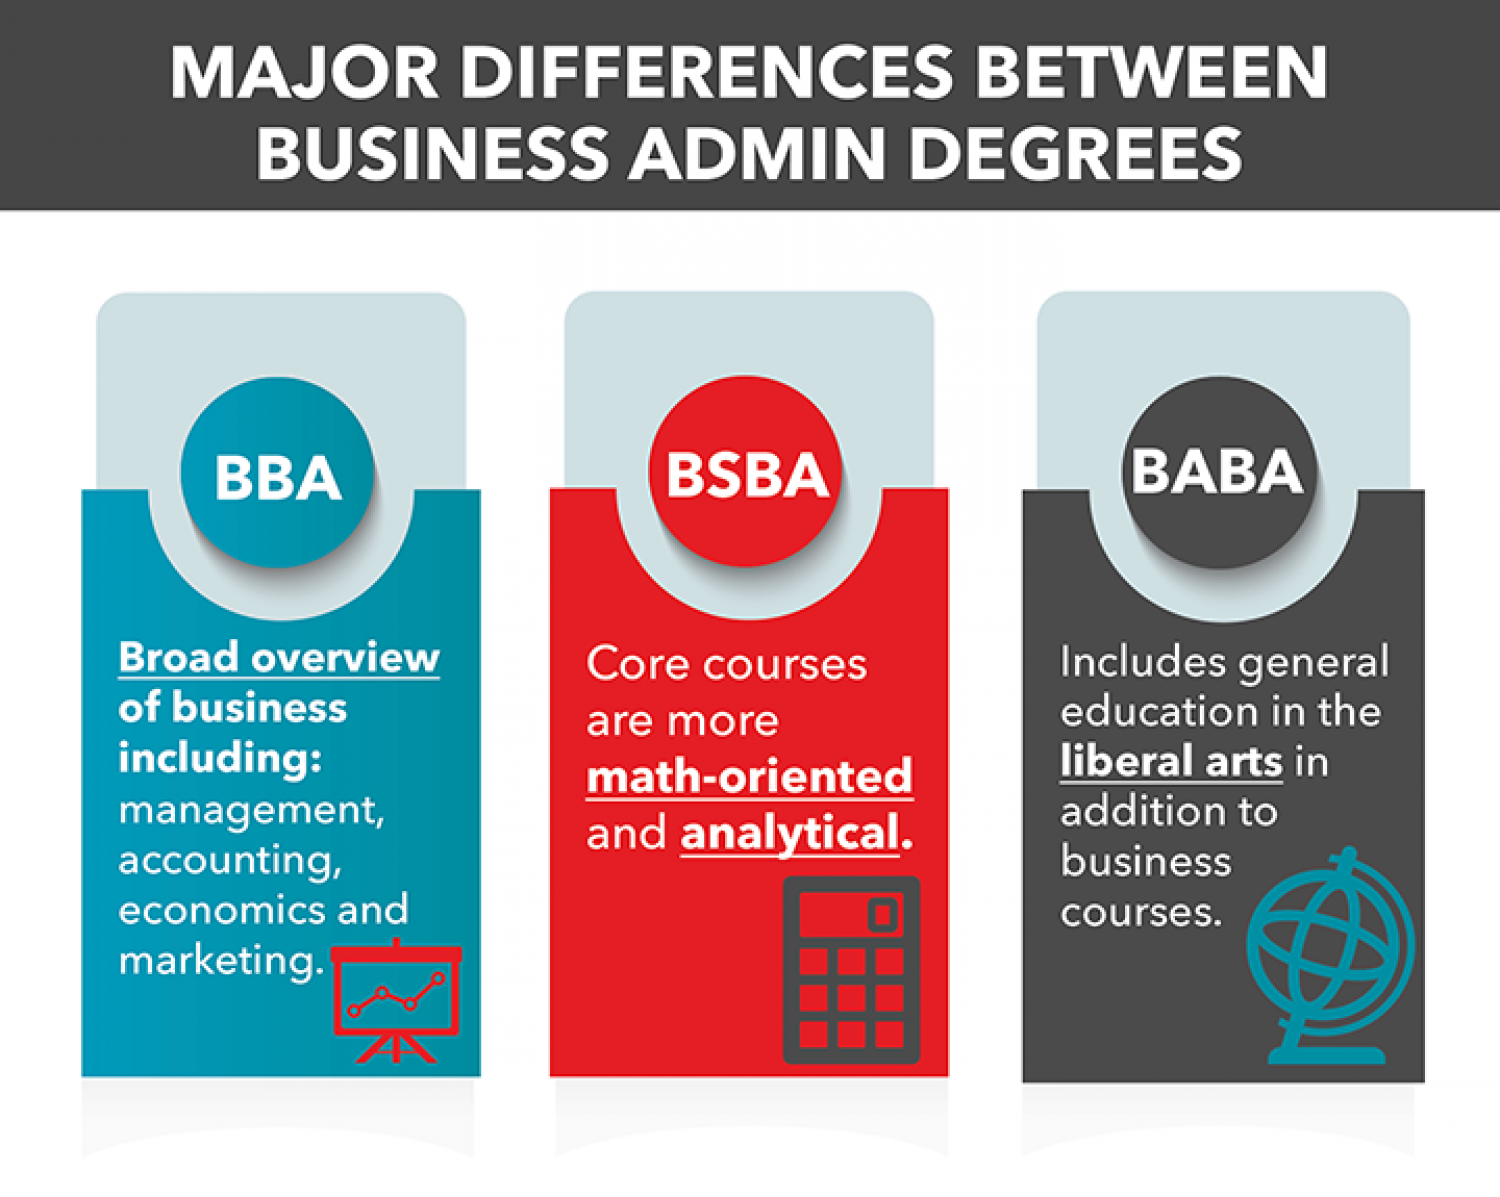 Types of Business Administration Degrees Infographic